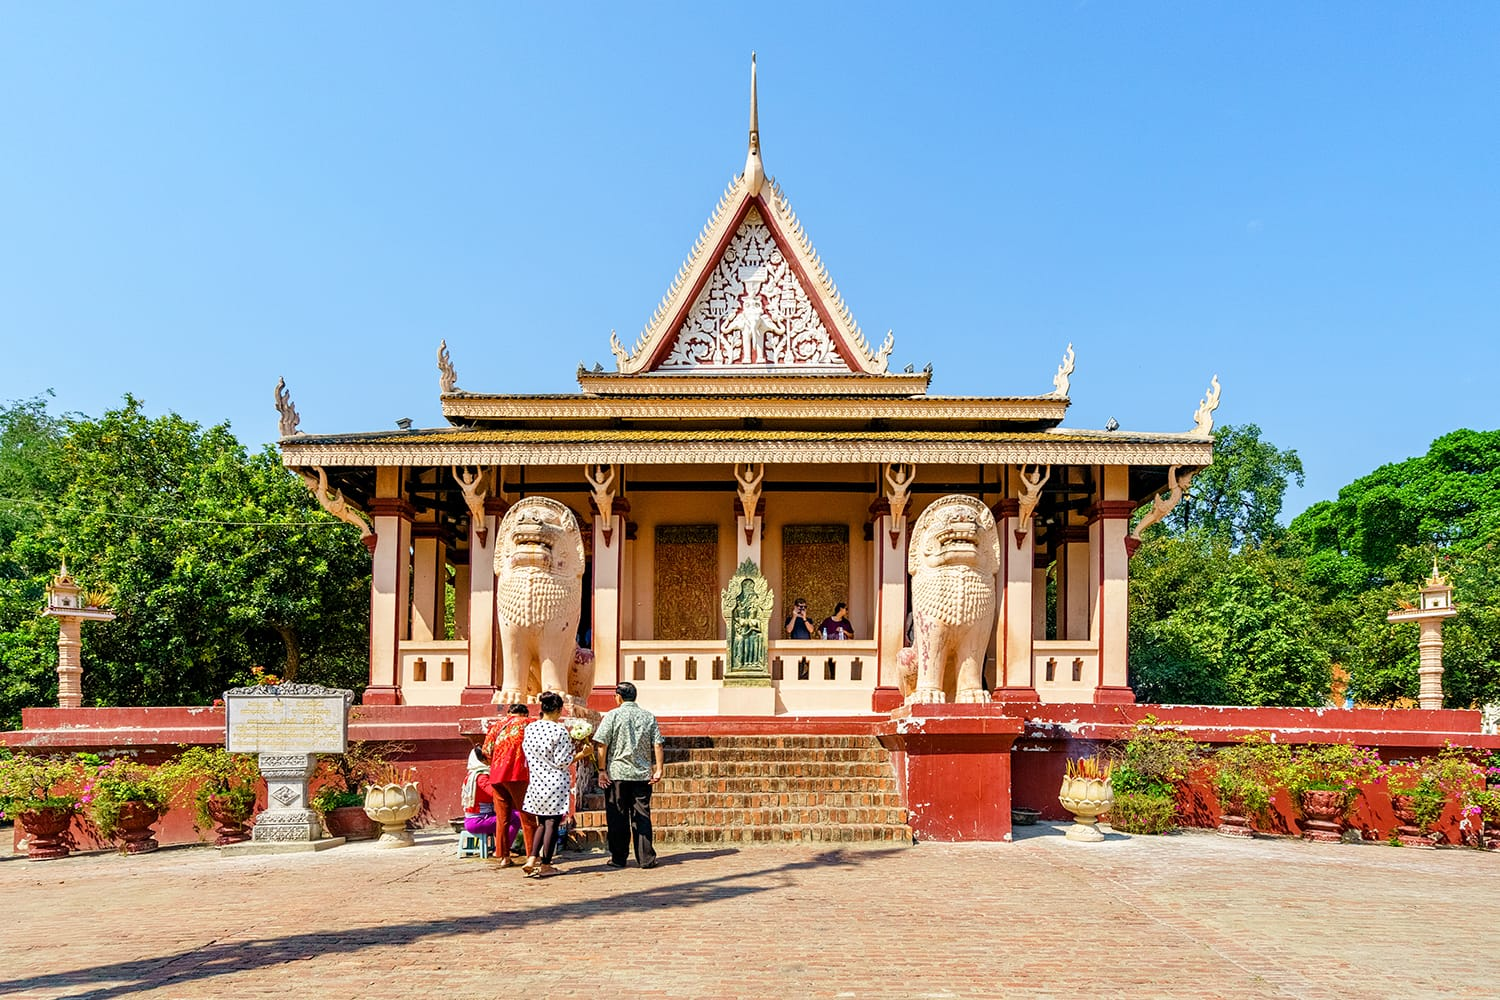 Beautiful view of Wat Phnom in Phnom Penh, Cambodia